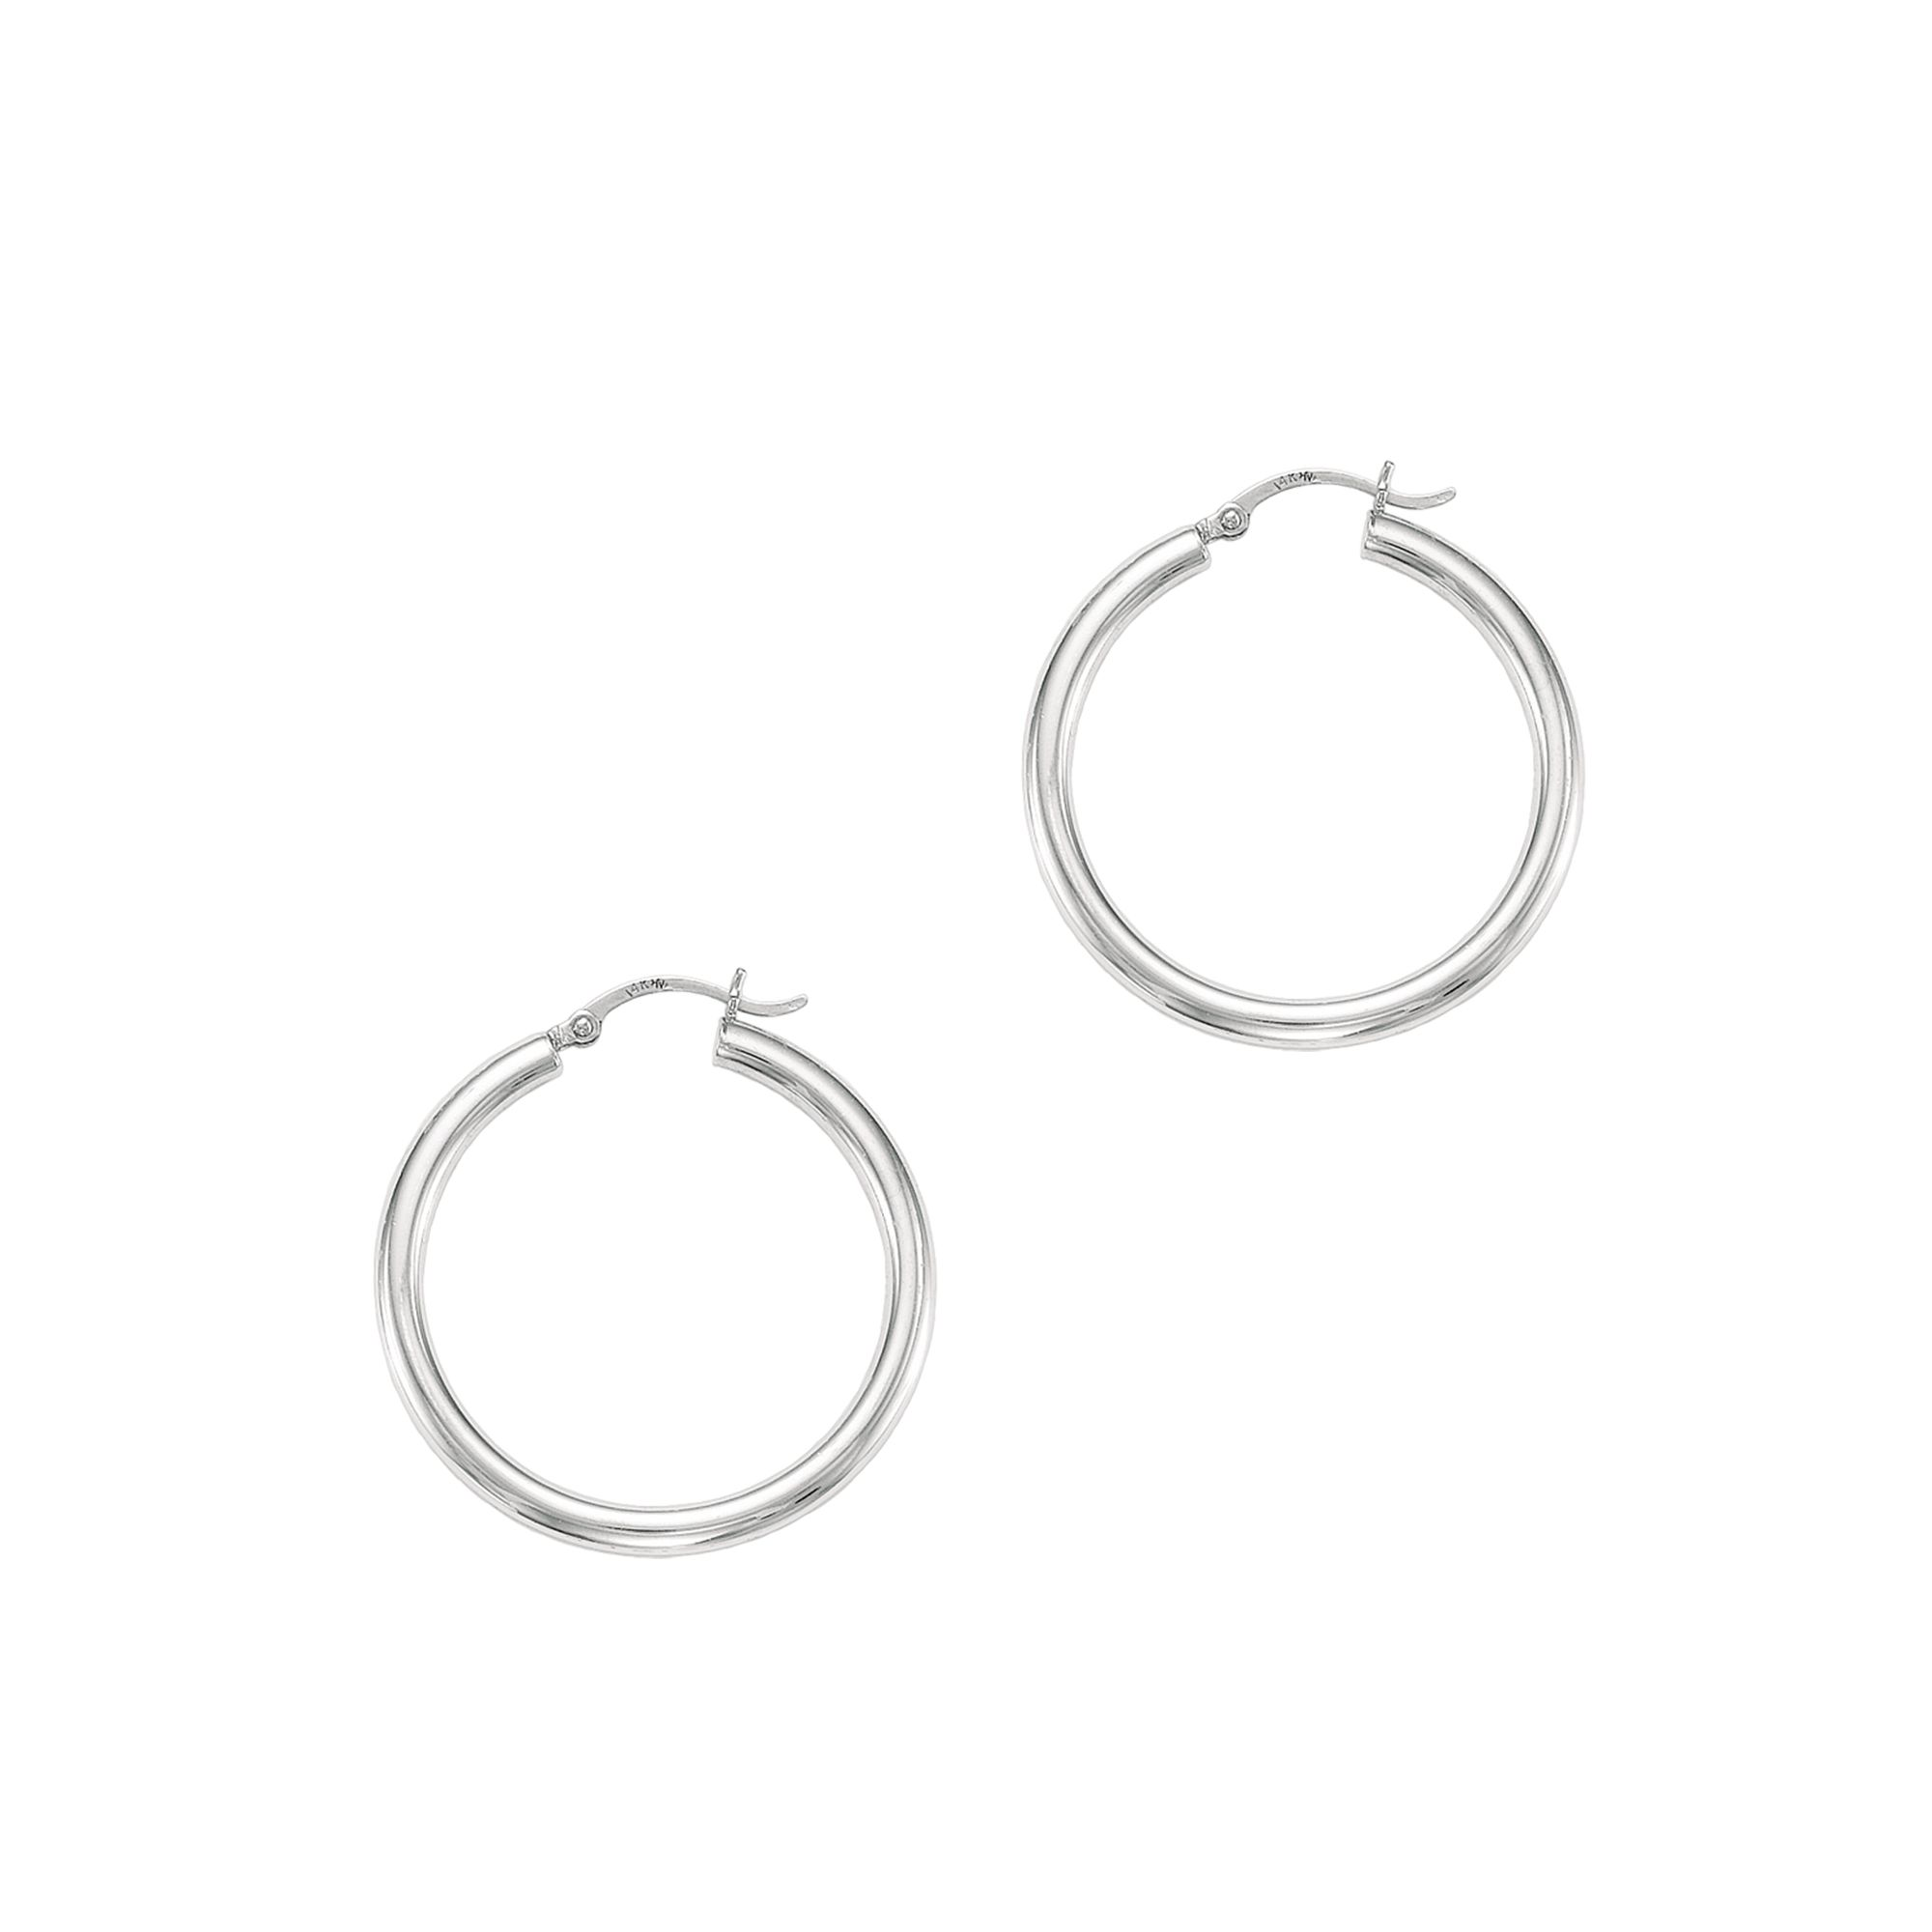 14 Karat Gold 4 mm Polished Hoop Earrings